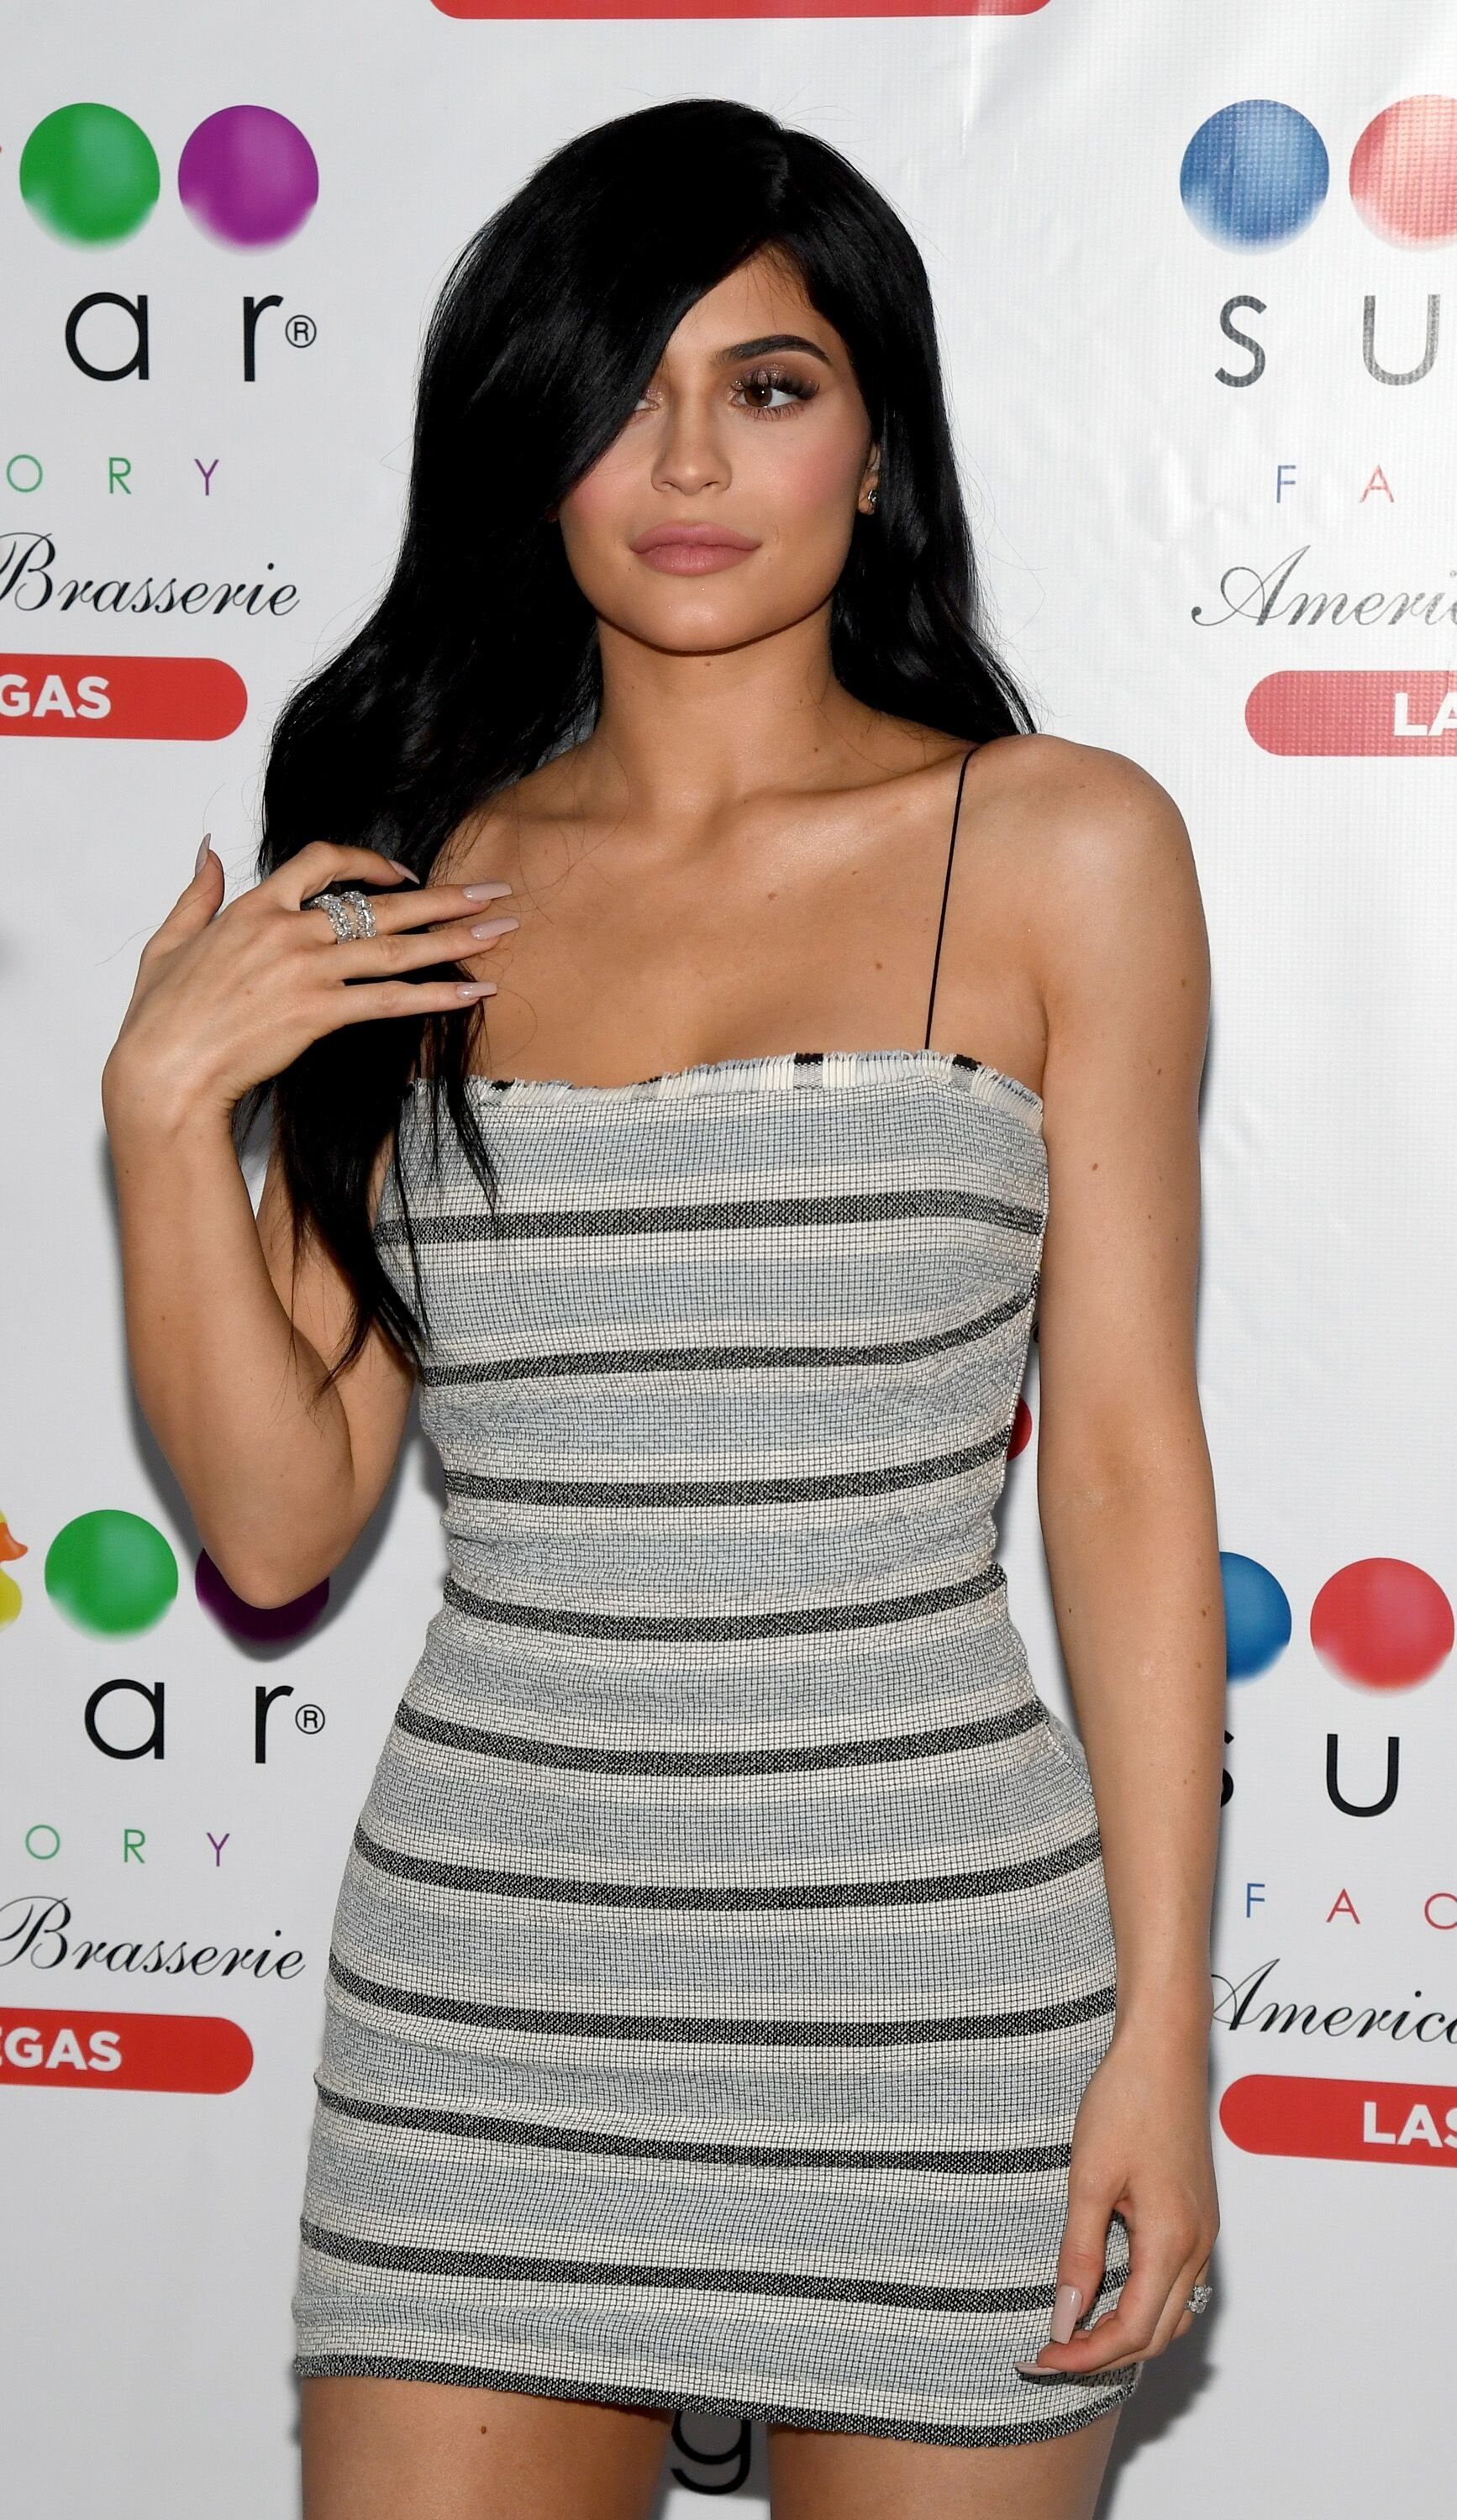 Television personality Kylie Jenner poses inside Sugar Factory American Brasserie at the Fashion Show mall on April 22, 2017. | Source: Getty Images